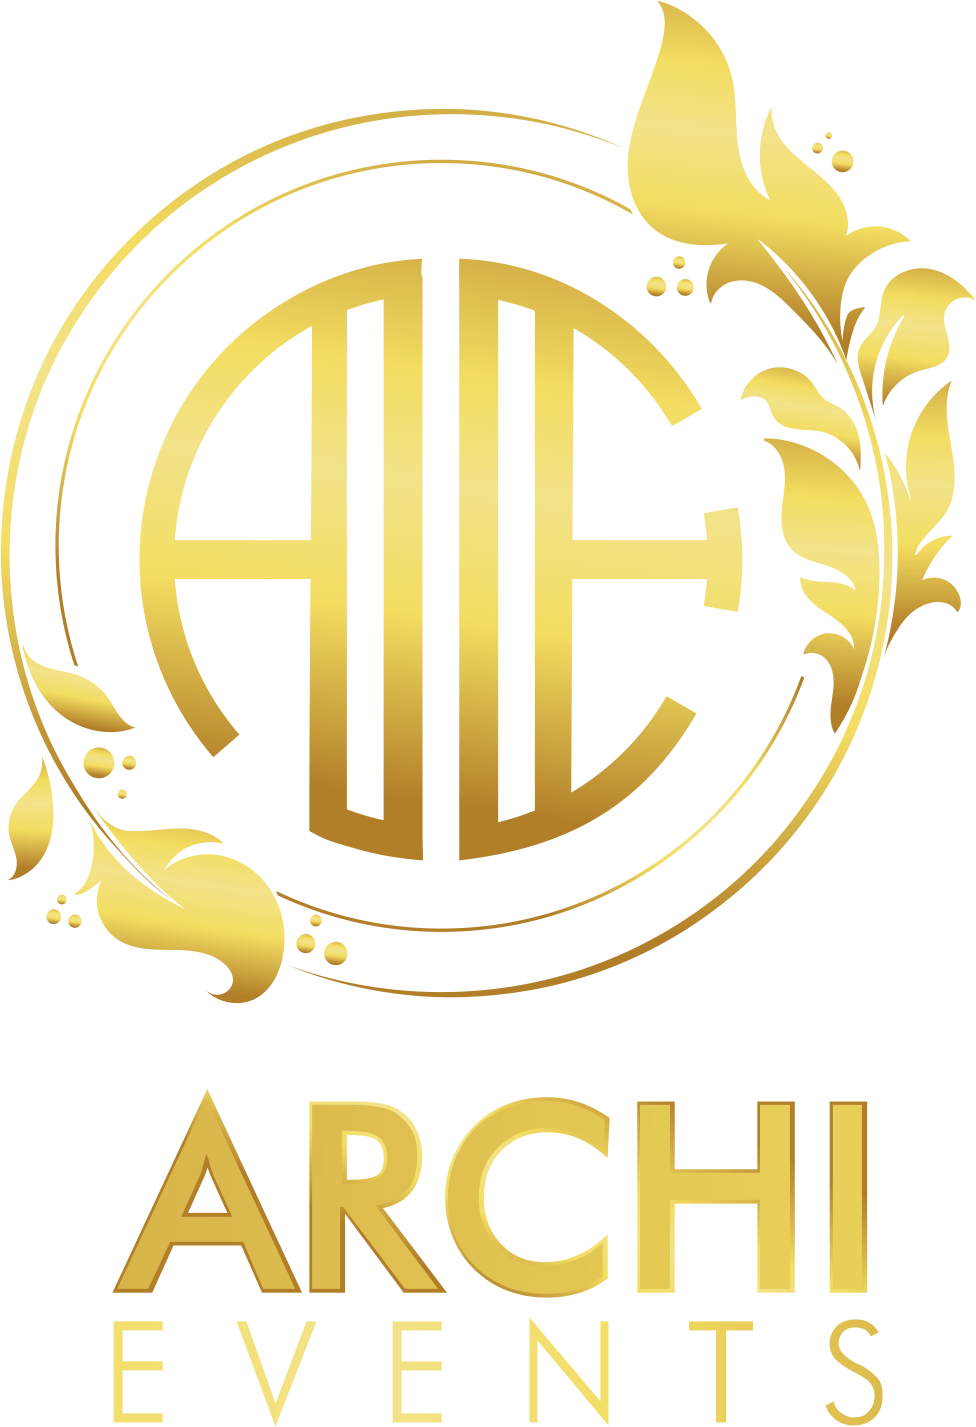 Archi Events